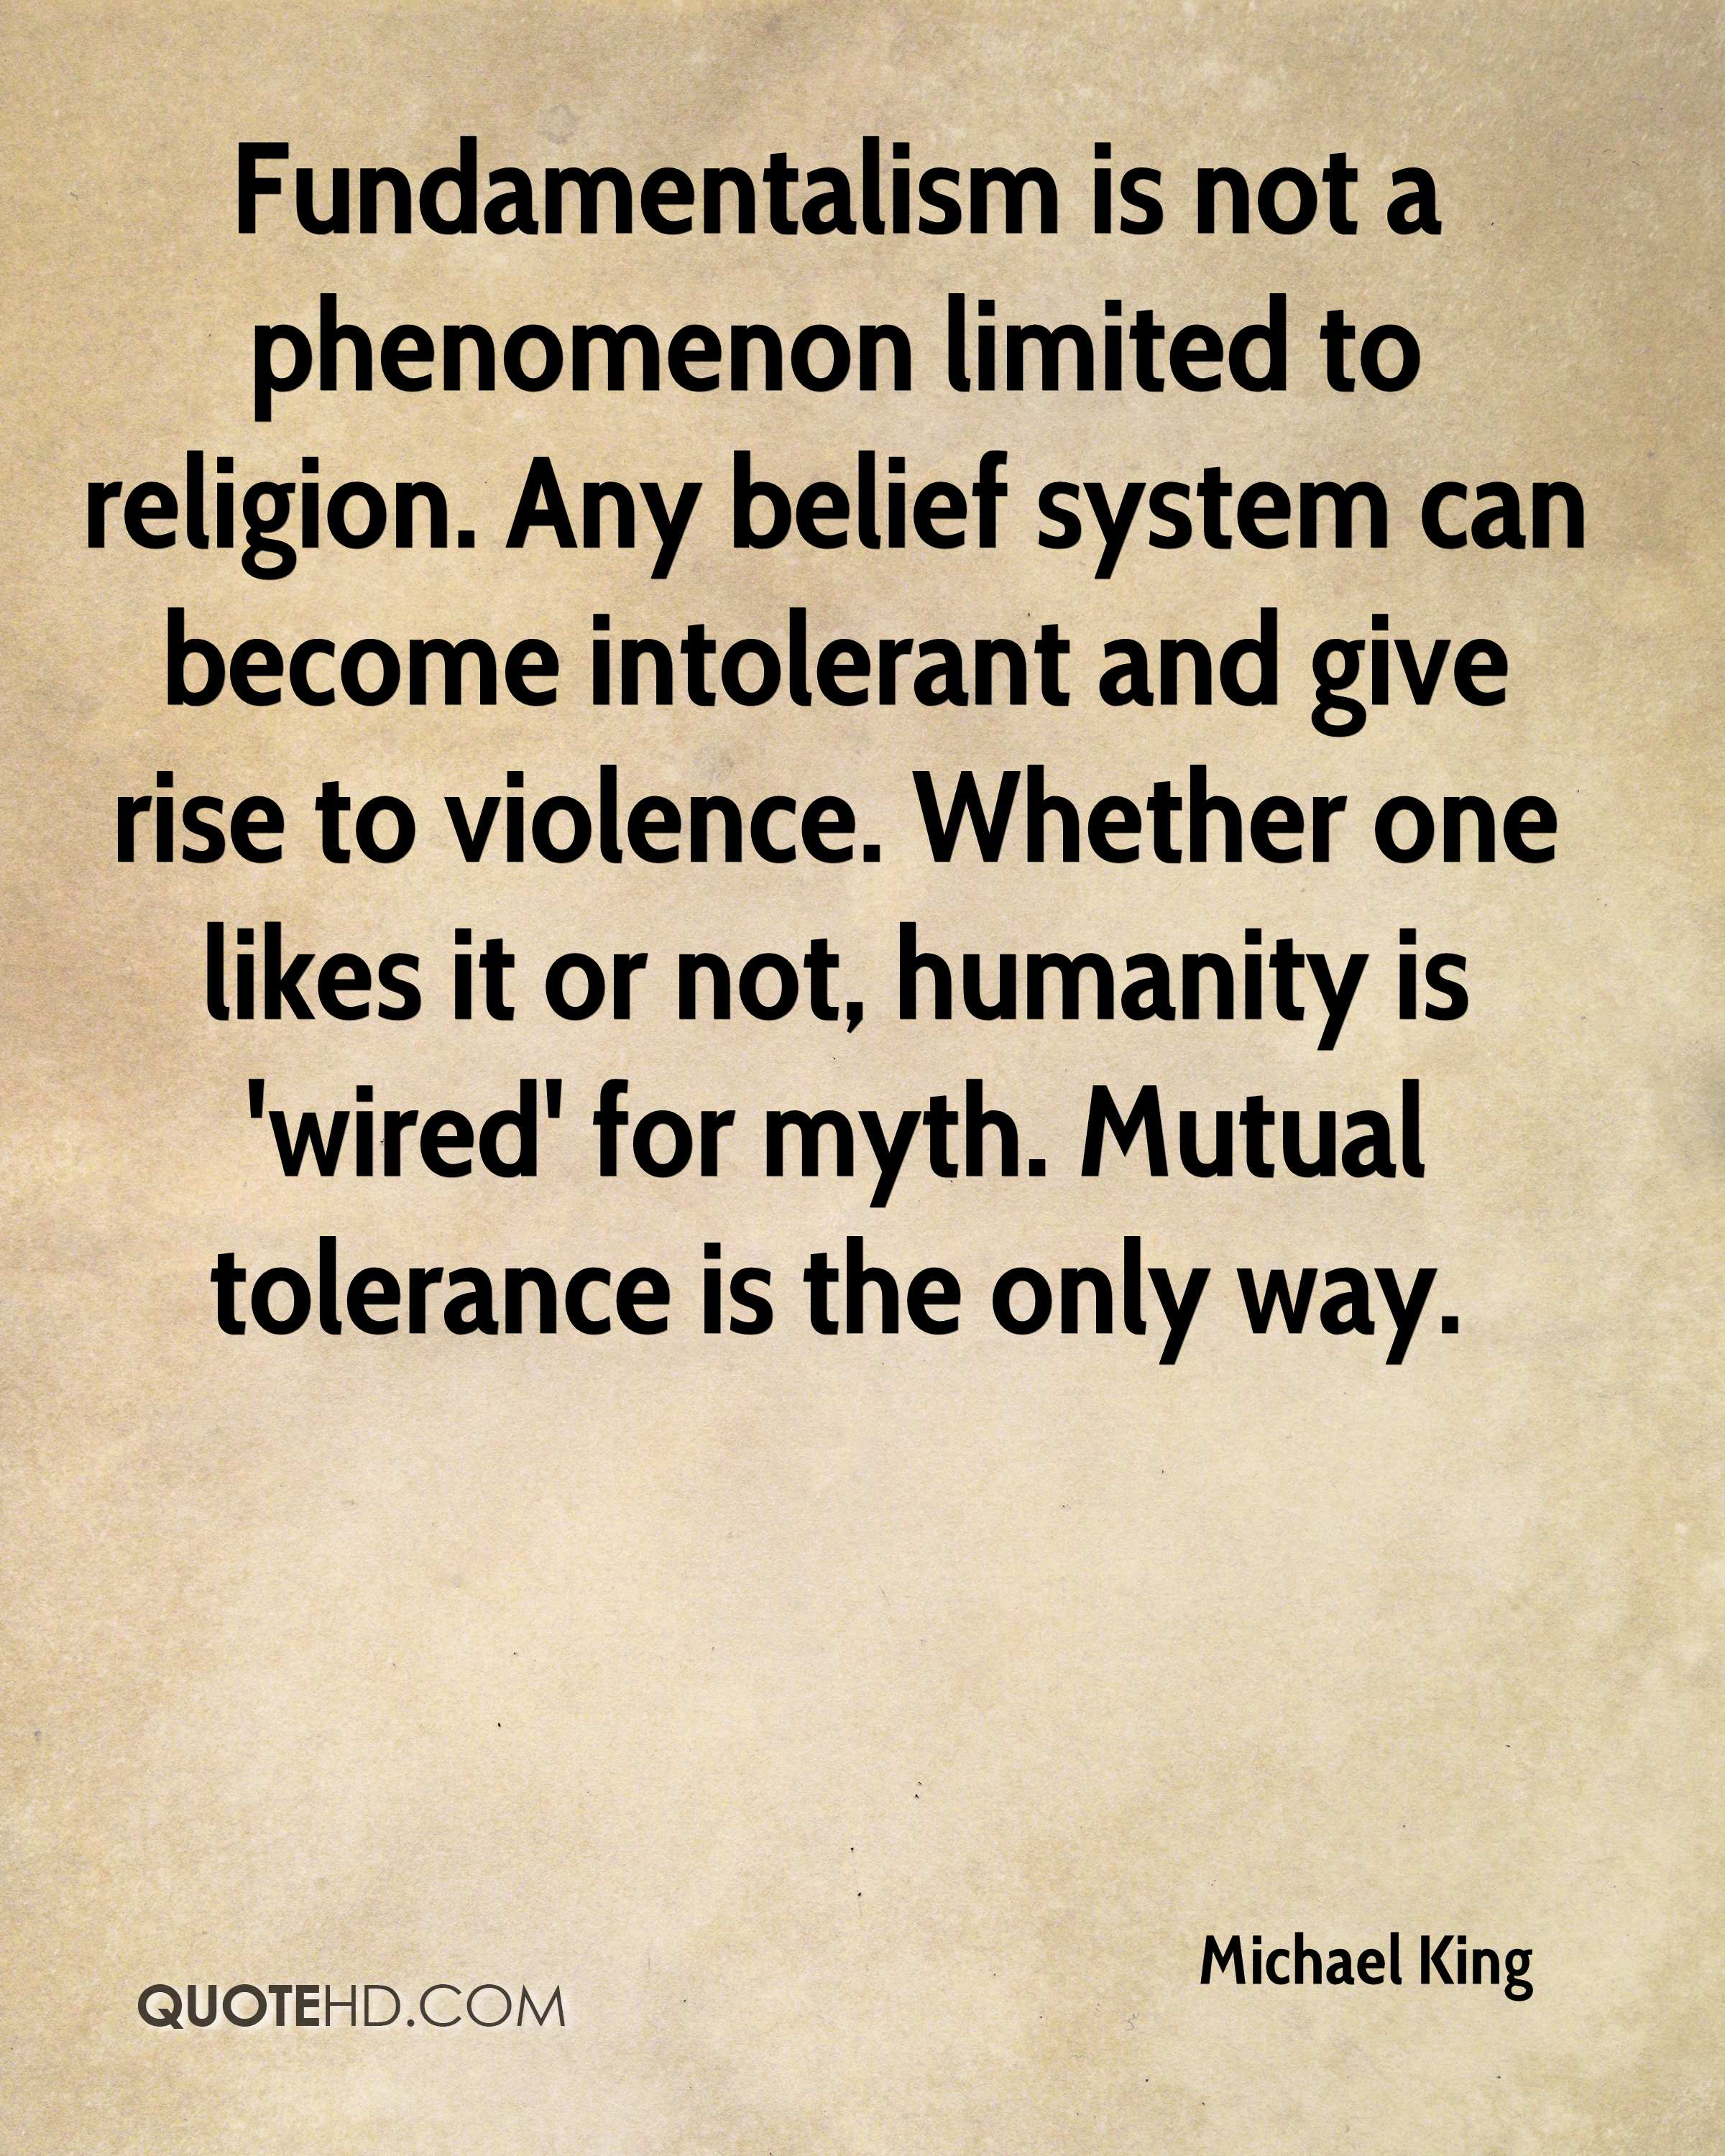 Fundamentalism is not a phenomenon limited to religion. Any belief system can become intolerant and give rise to violence. Whether one likes it or not, humanity is 'wired' for myth. Mutual tolerance is the only way.